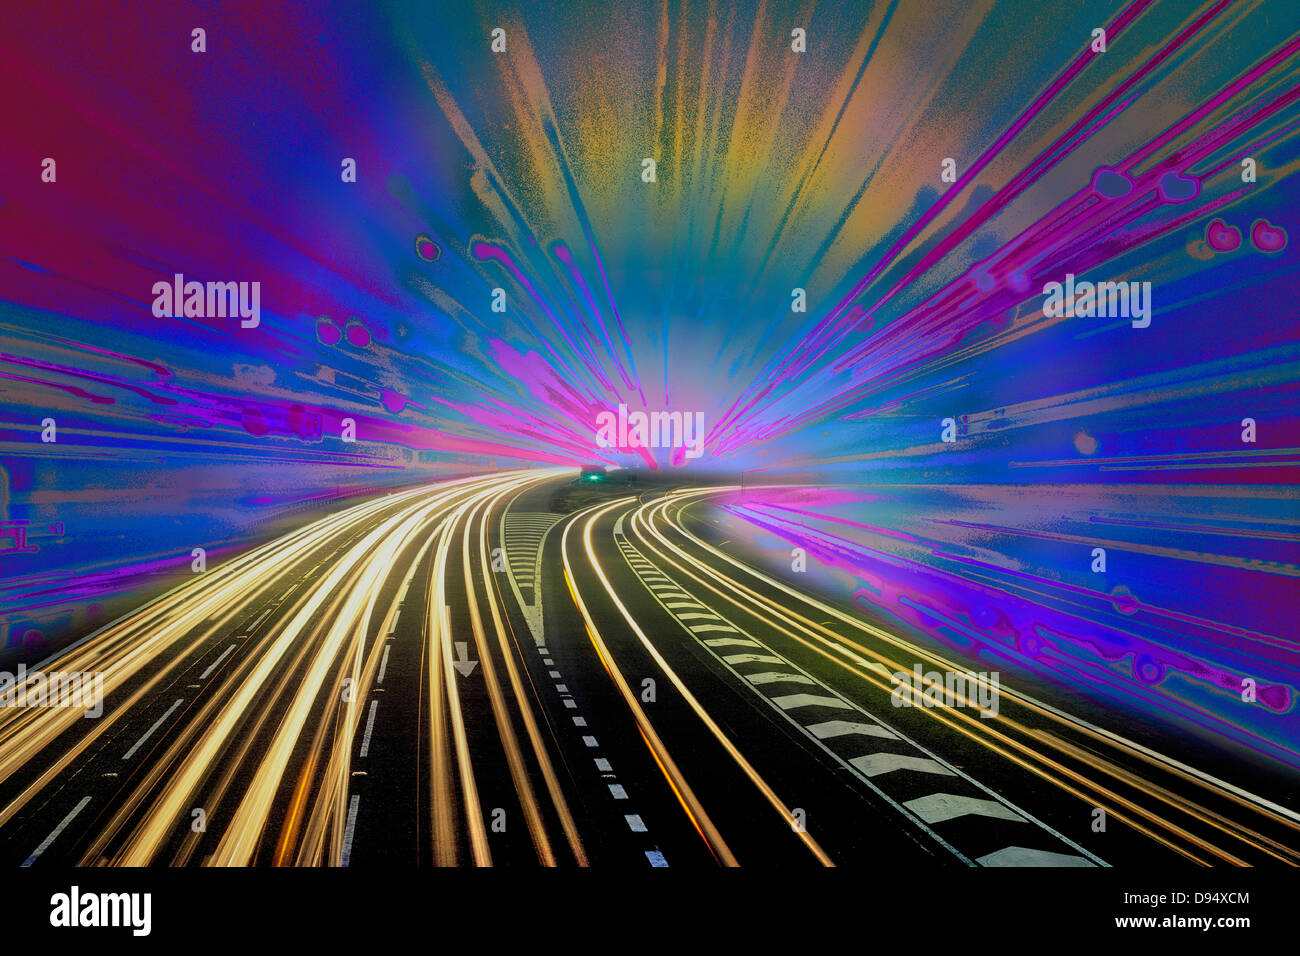 Montage of two night photographs of traffic light trails. - Stock Image